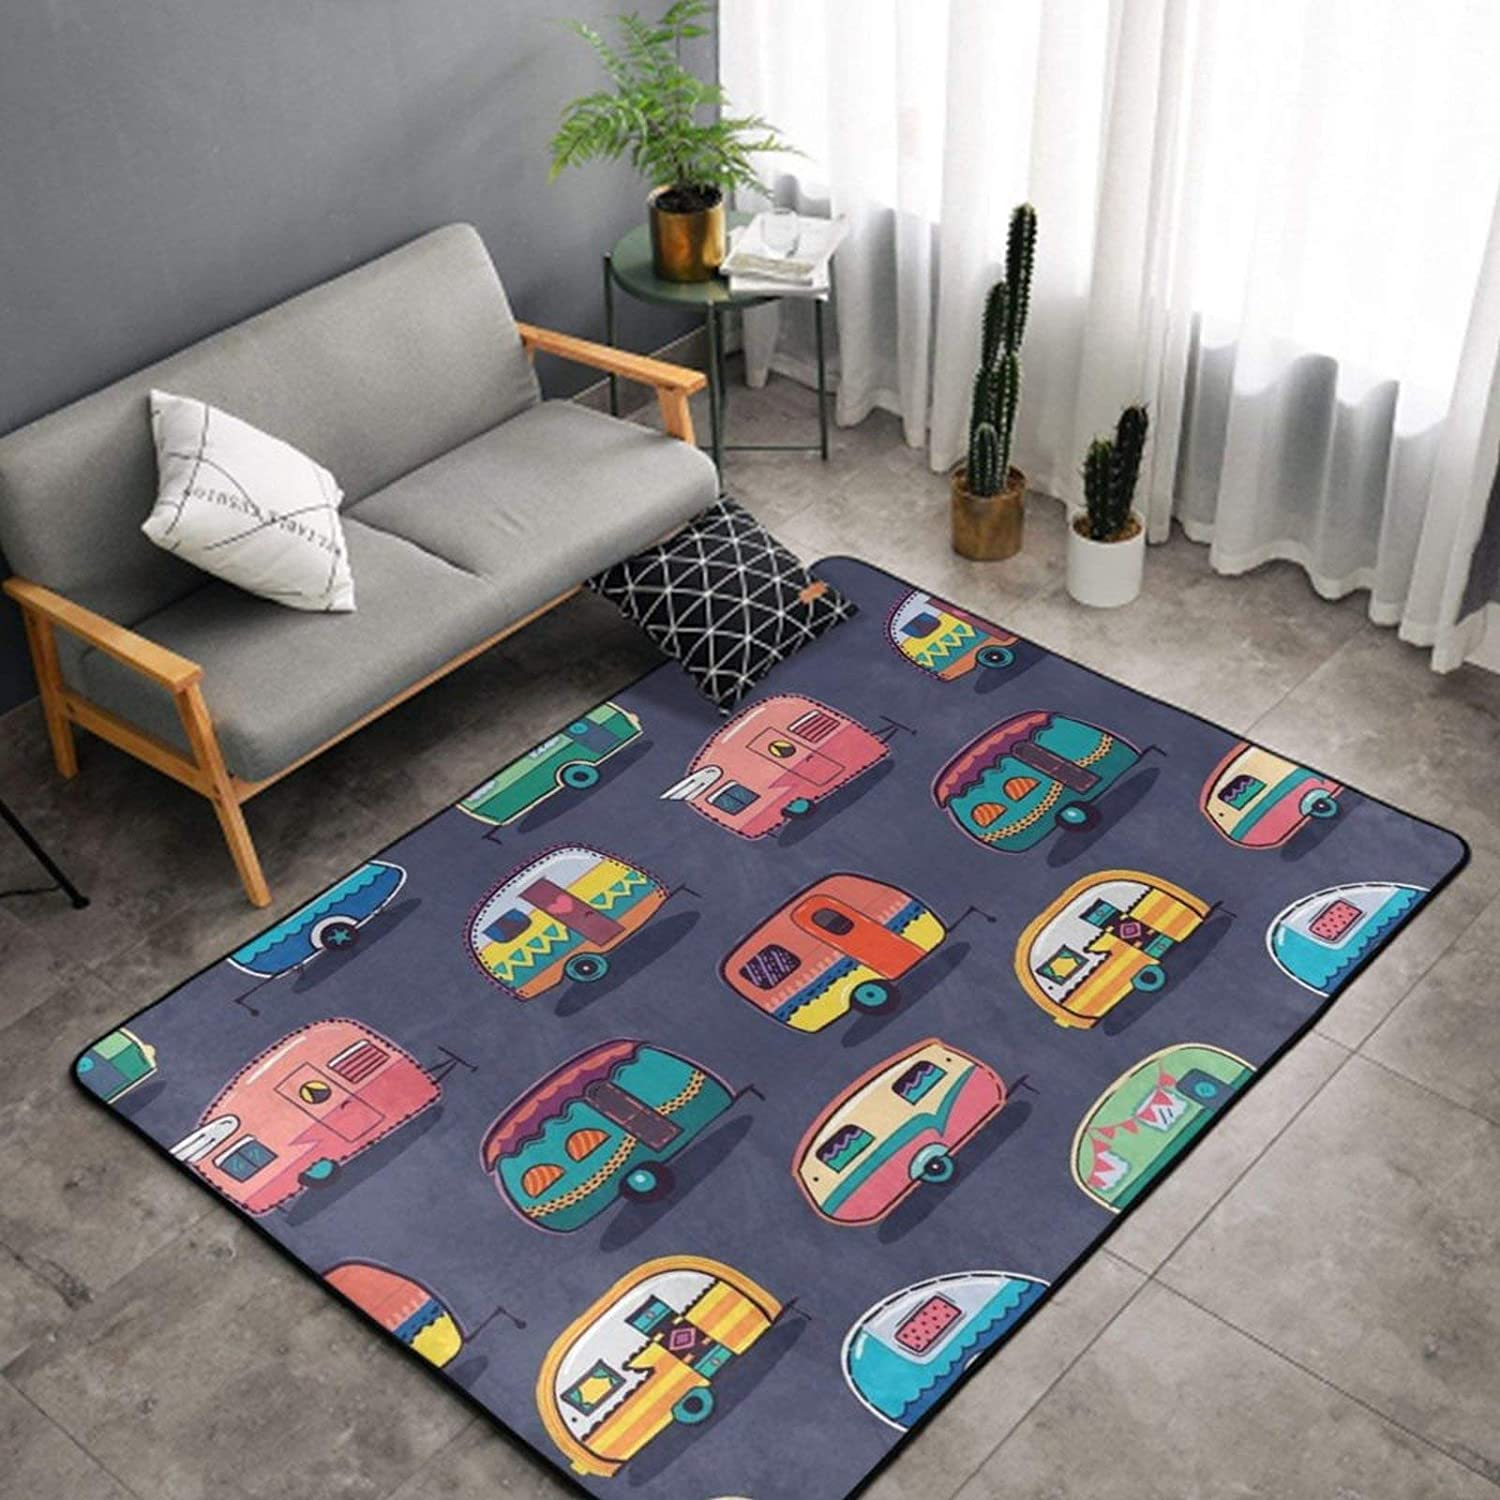 SWEET High order TANG Luxury Happy Camper Camping Charlotte Mall Kids Bedroom Room for Rug